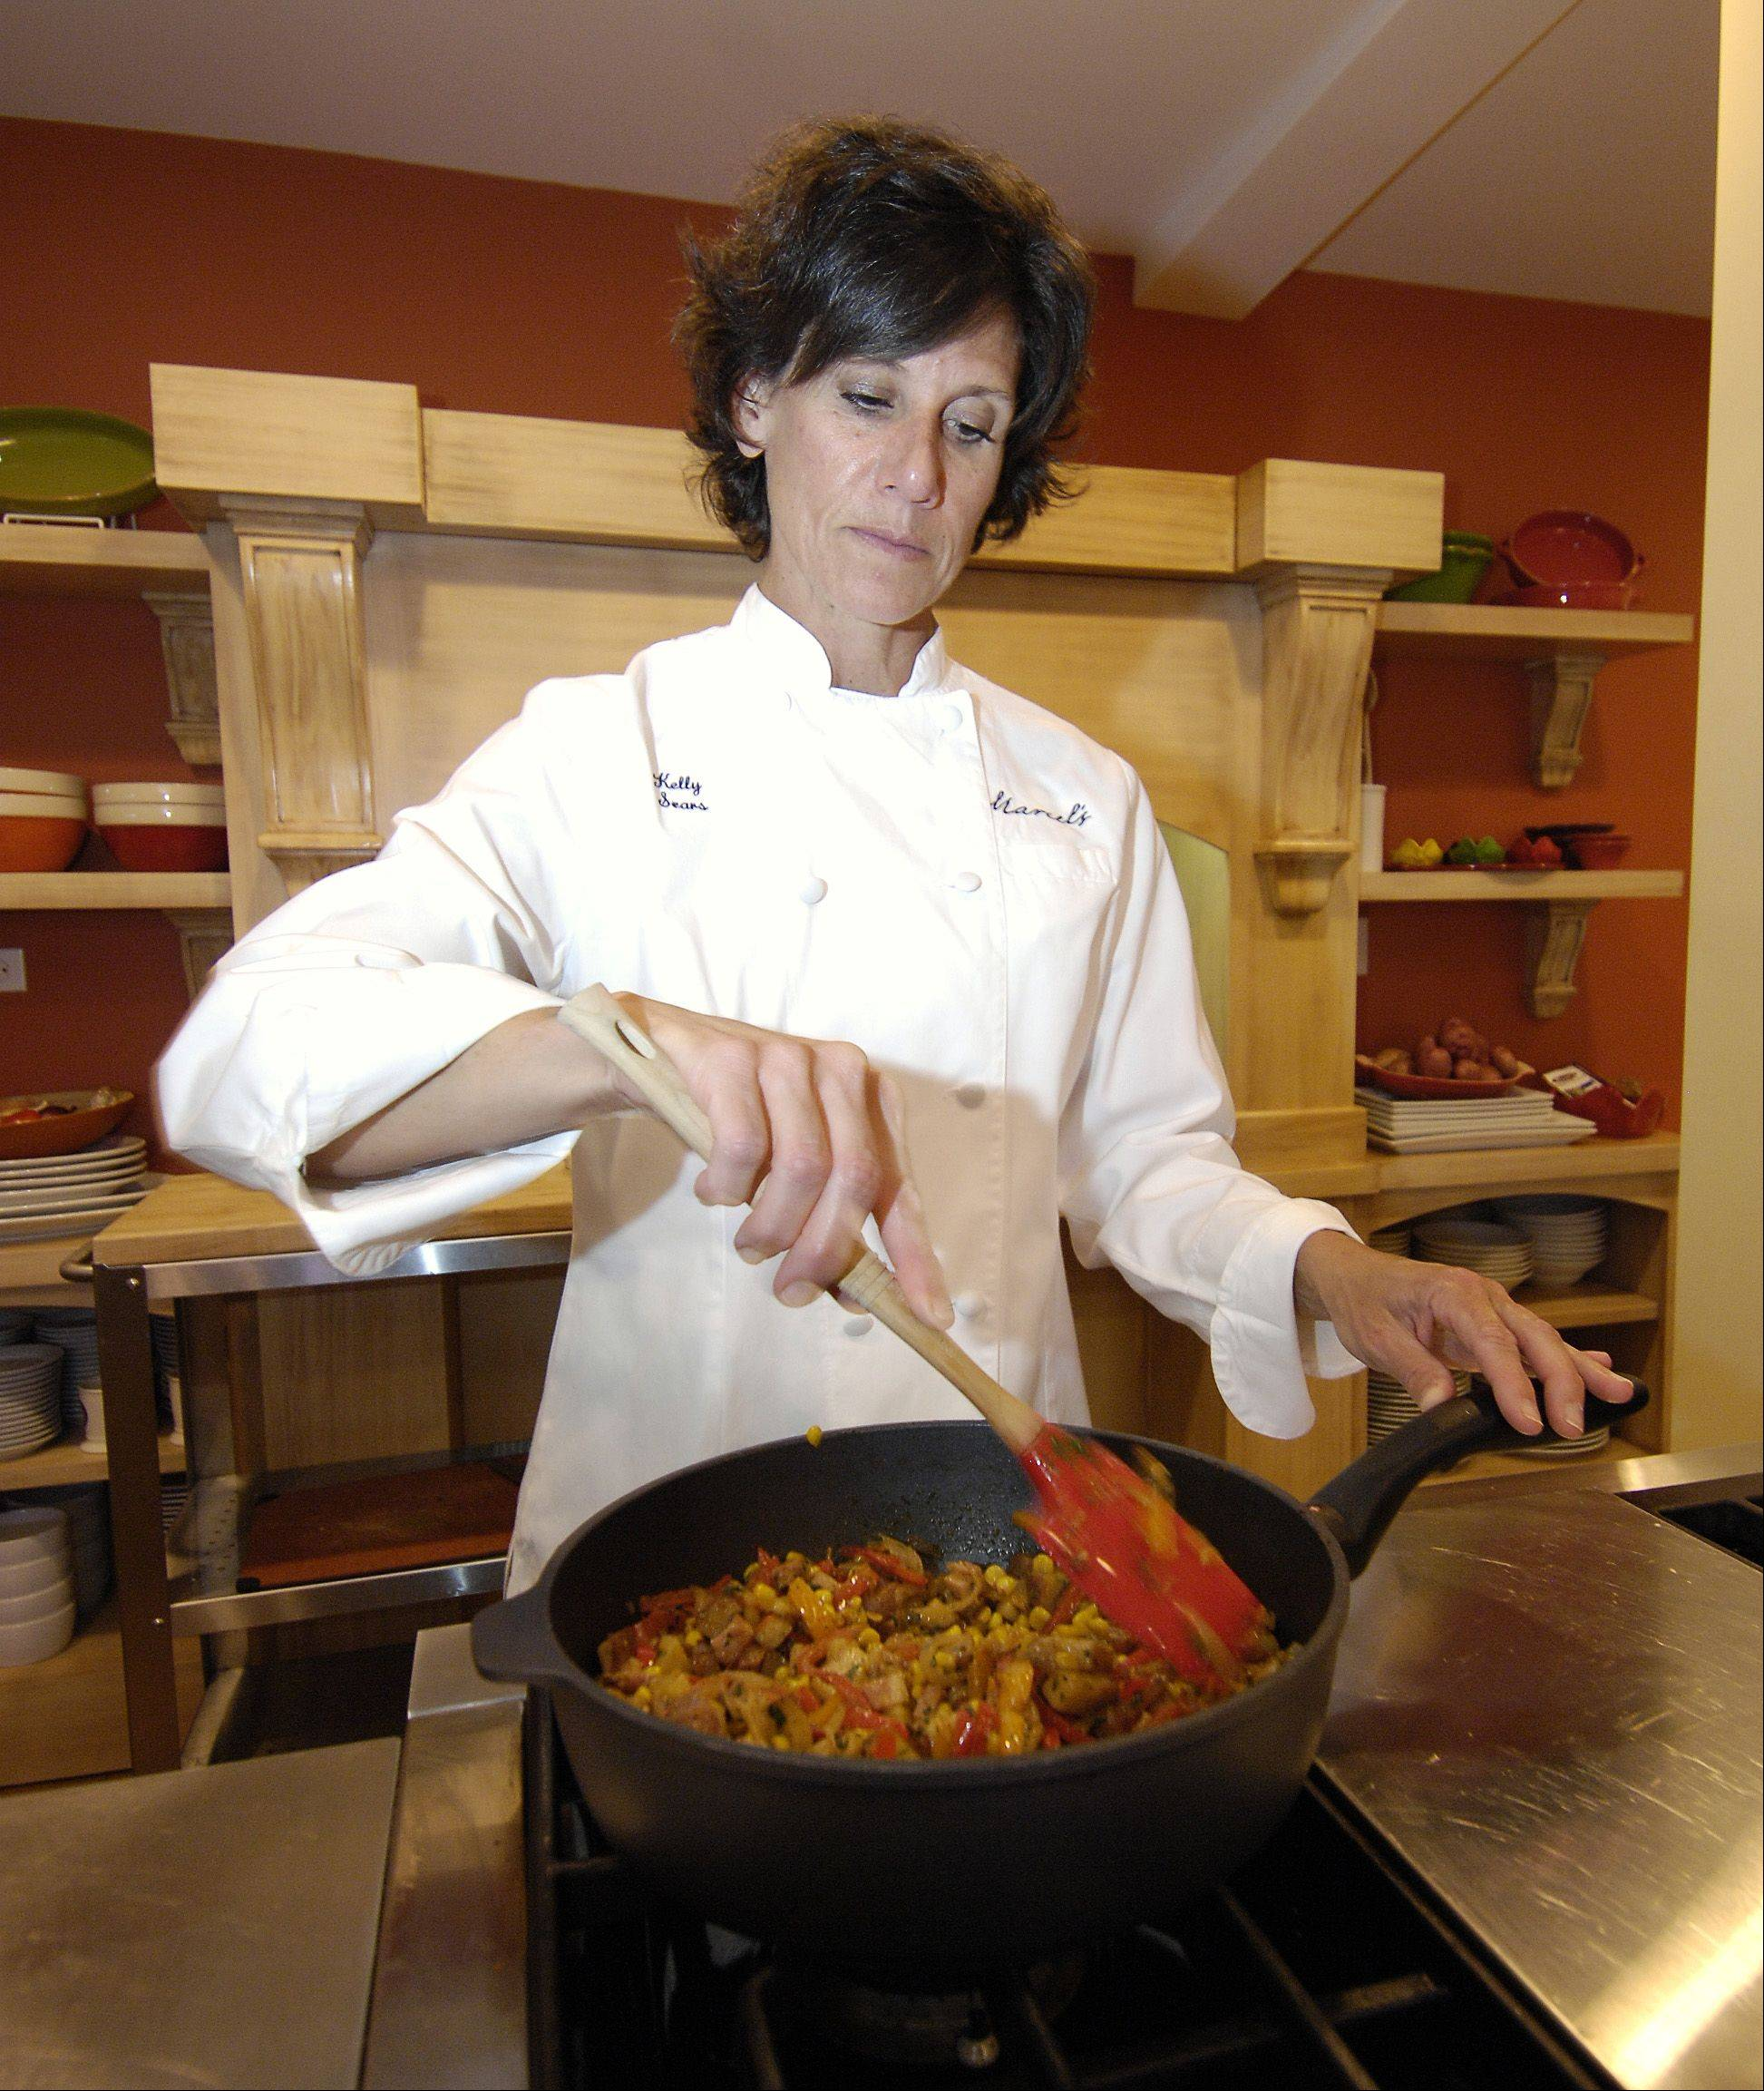 Chef Kelly Sears makes Corn Saut� with Pancetta, Potatoes and Peppers in the kitchen at Marcel's Culinary Experience in Glen Ellyn where she coordinates the store's cooking classes.